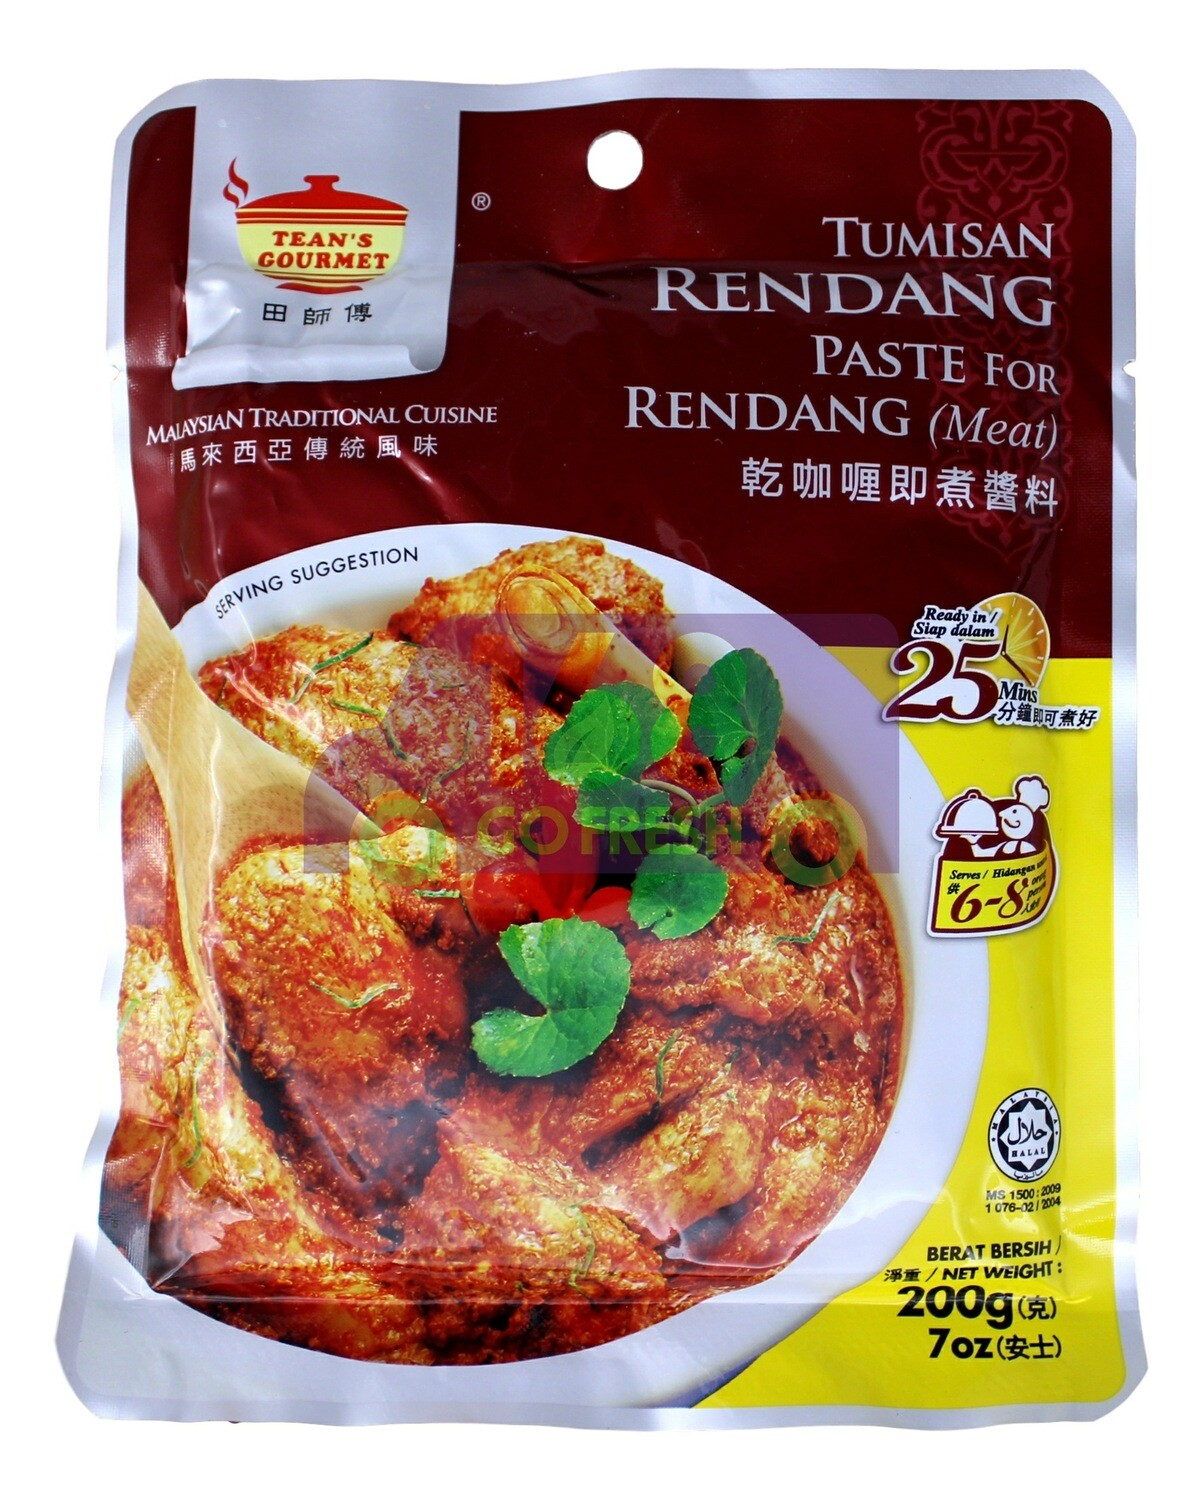 TEAN'S GOURM DRY CURRY PASTE FOR MEAT 田师傅 干咖喱即煮酱料(200G)